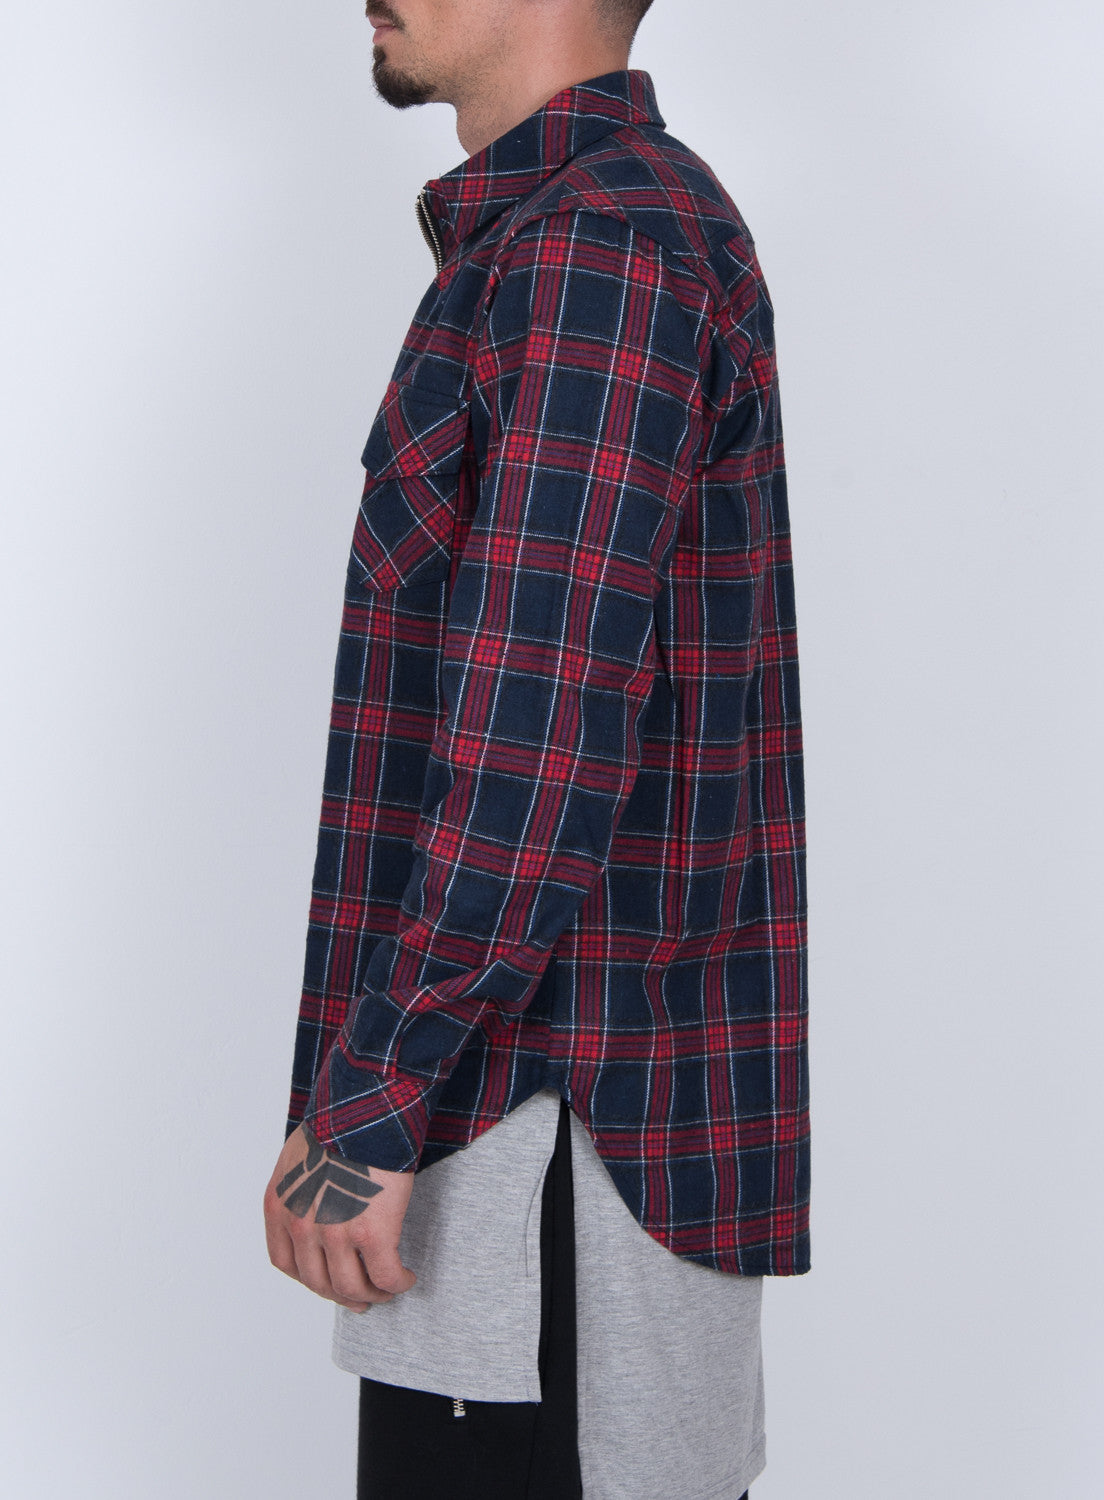 NAVY TARTAN PLAID ZIP UP FLANNEL SHIRT